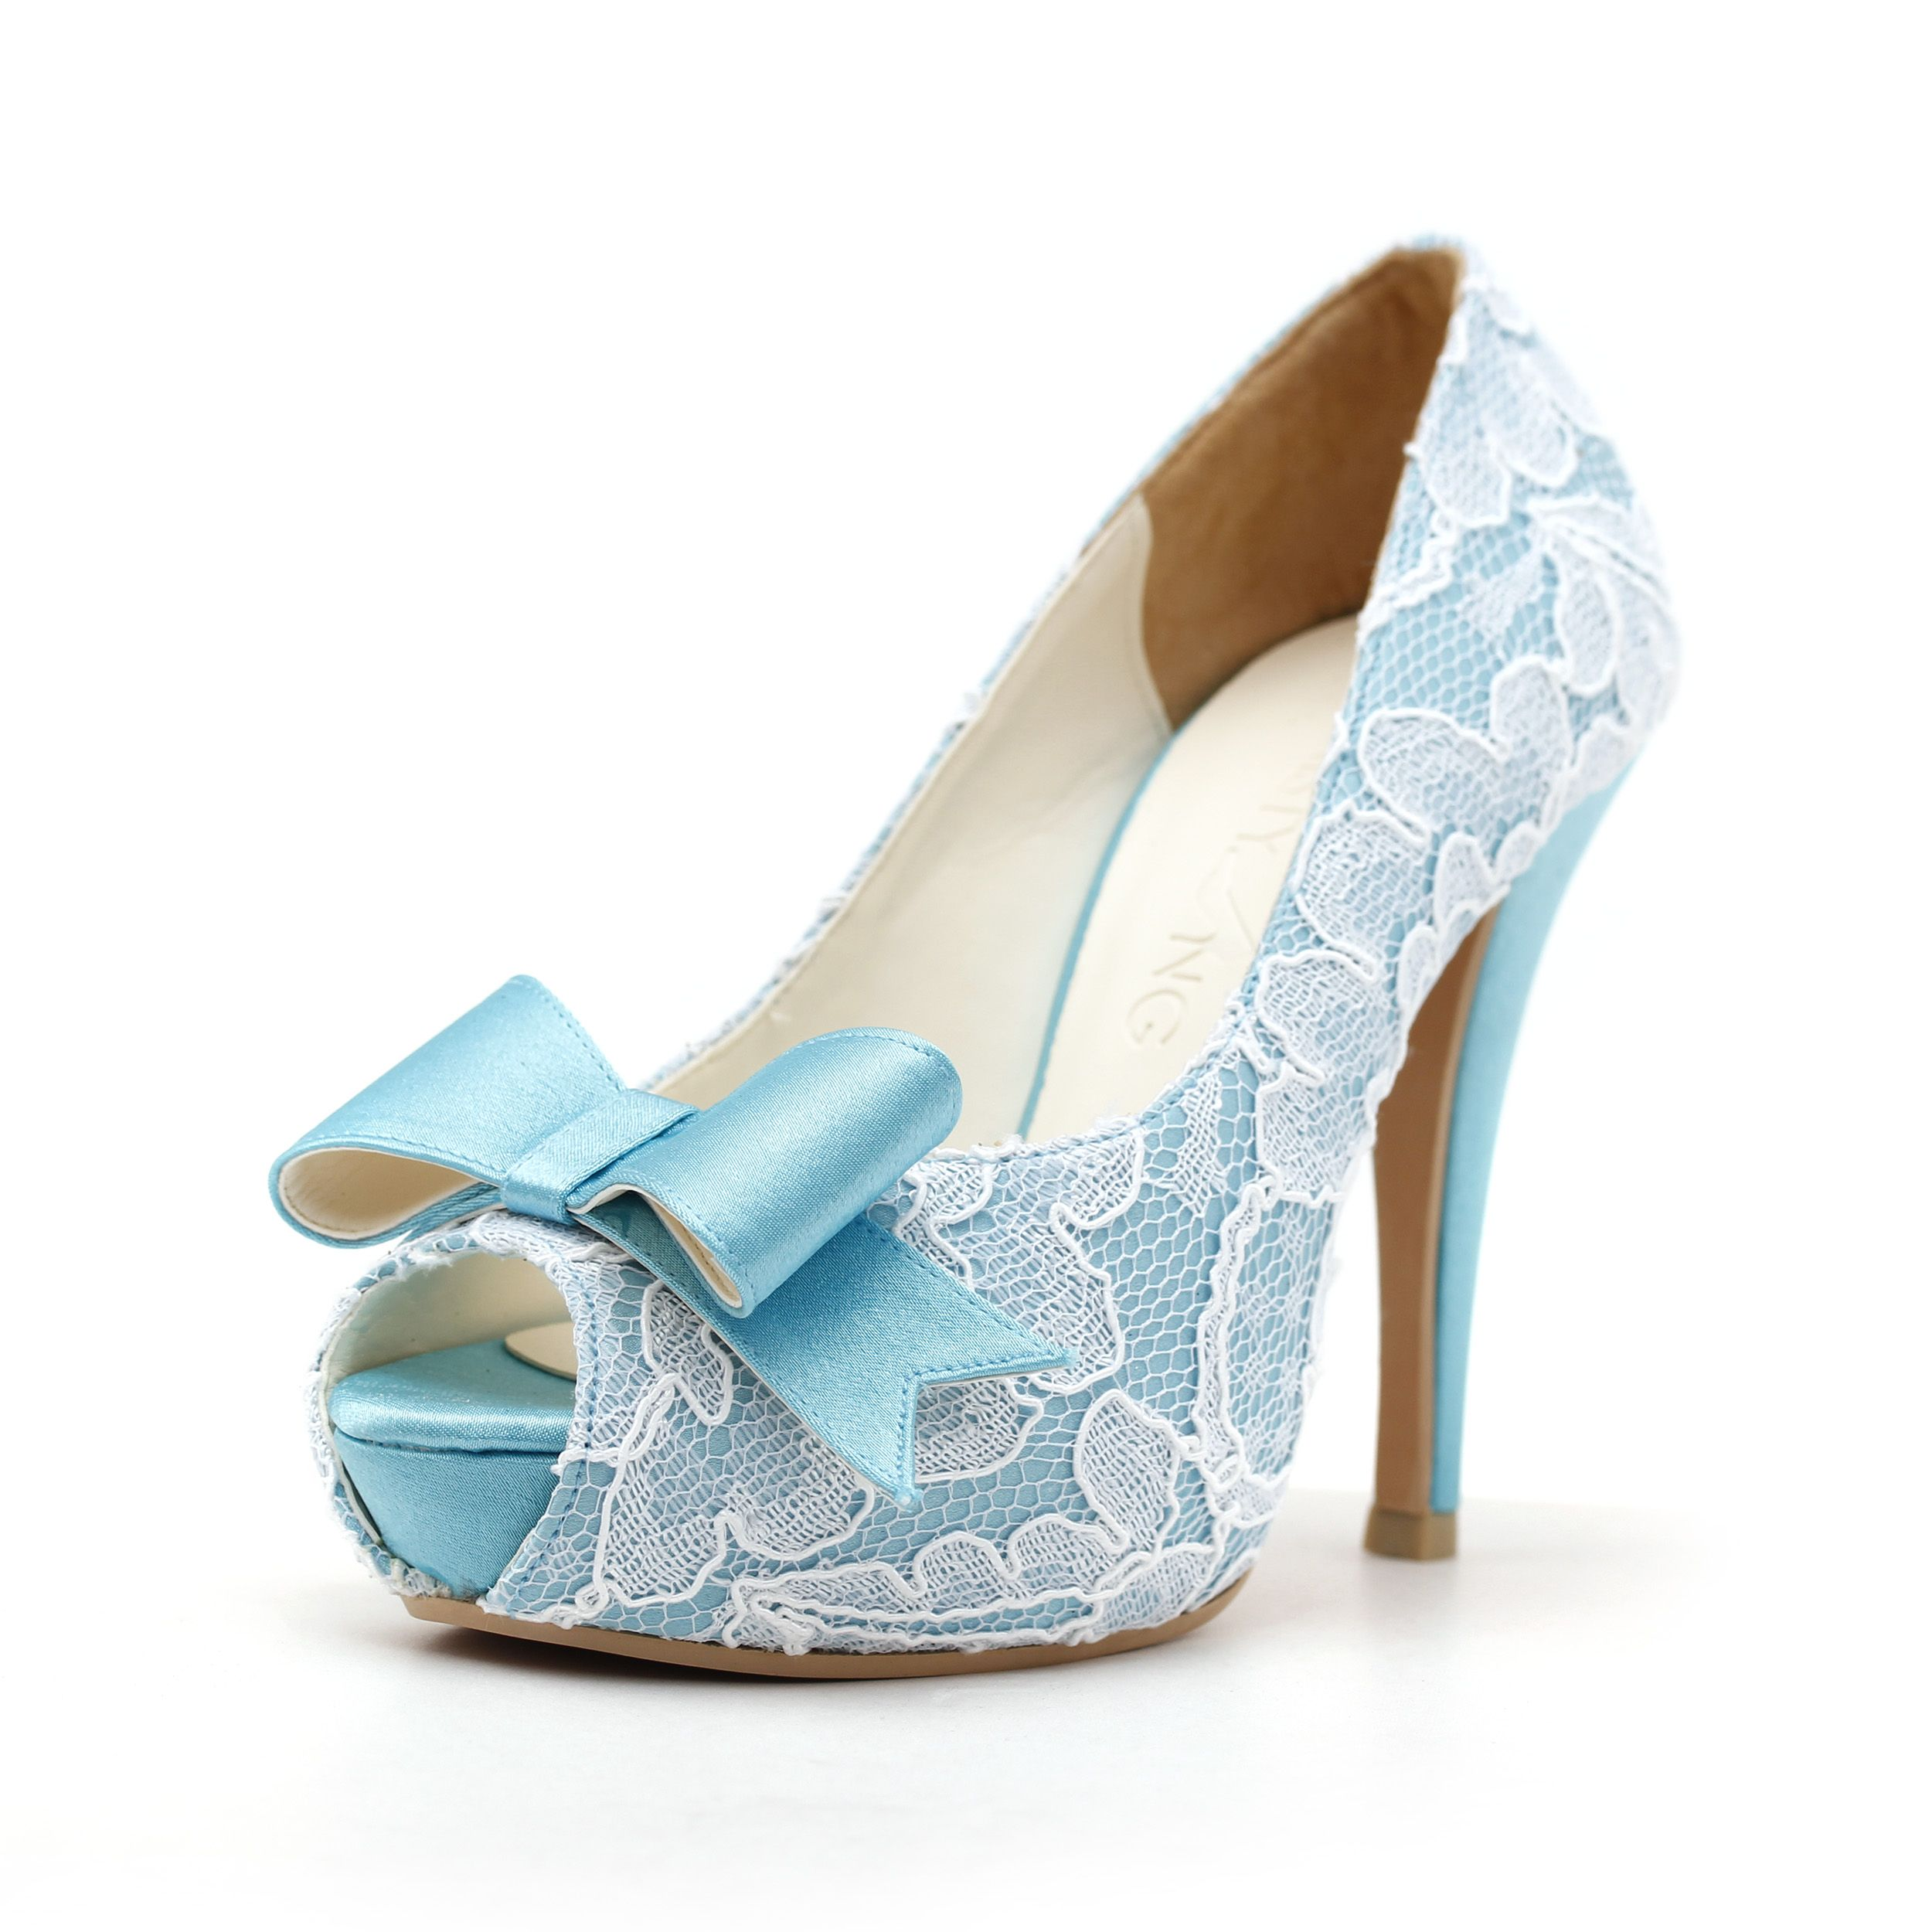 light blue wedding shoes - Google Search | weddings | Pinterest ...